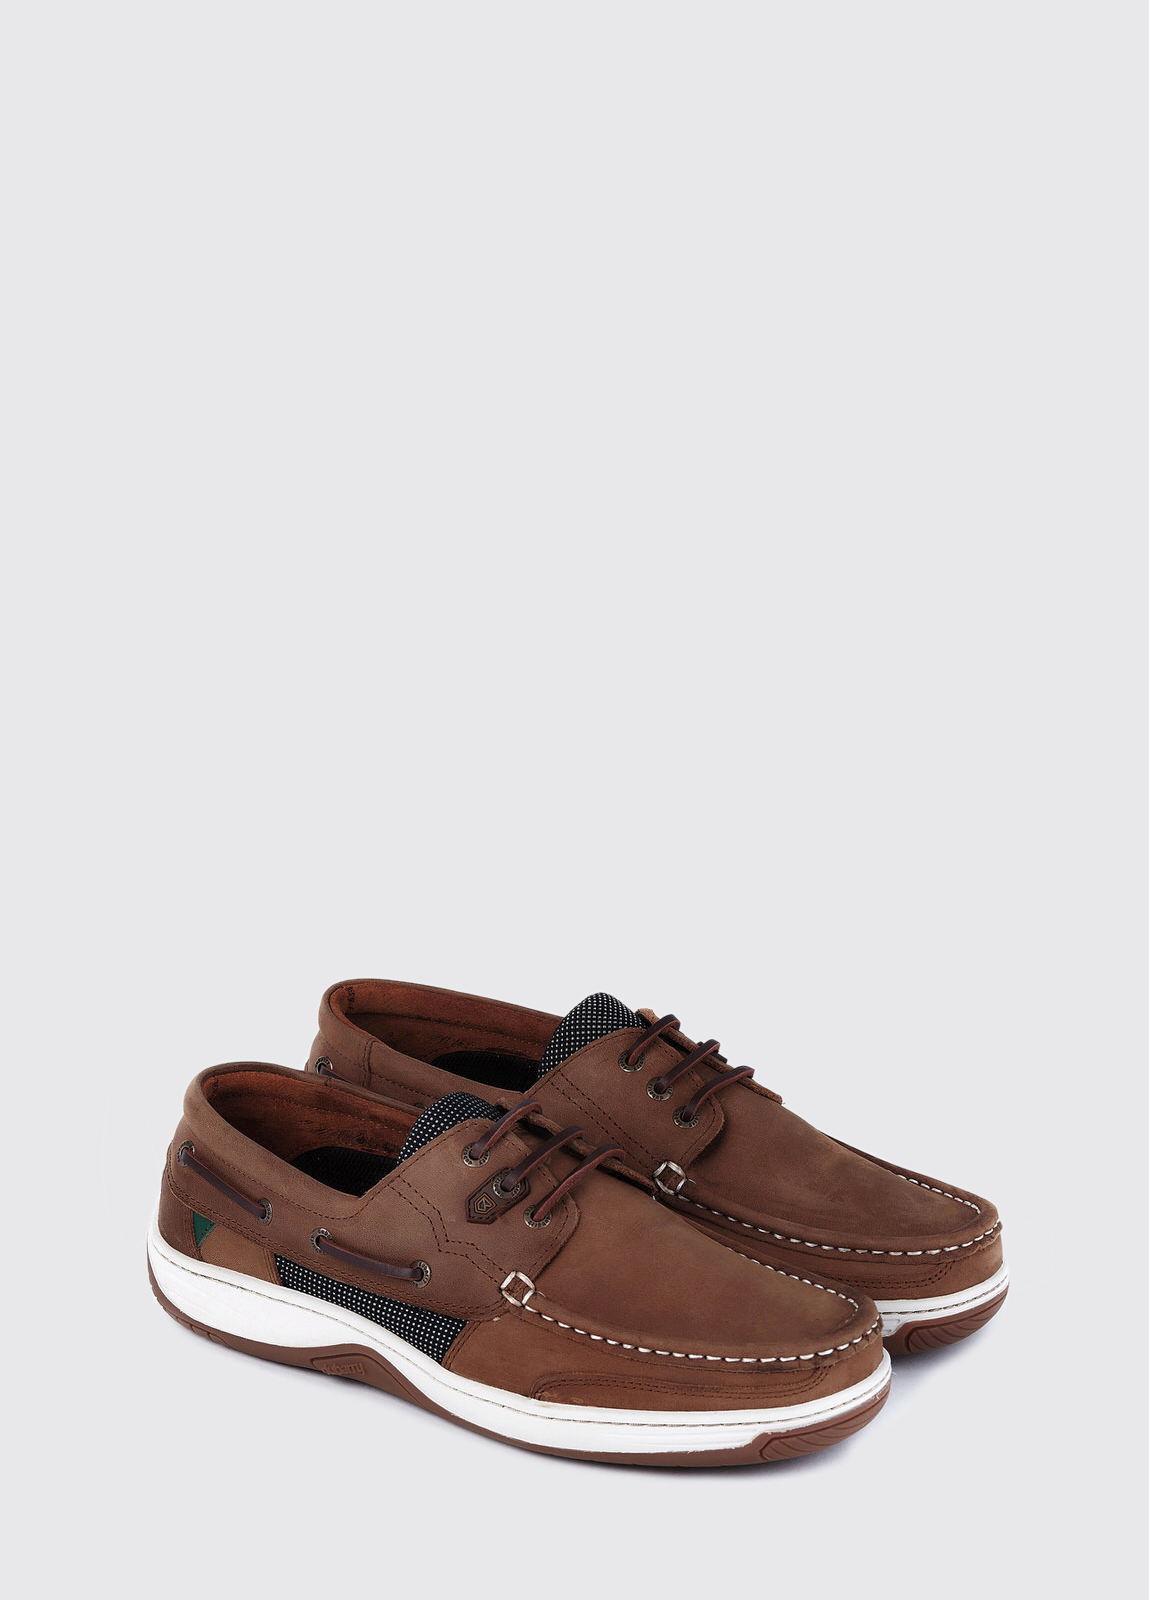 Regatta ExtraFit™ Deck Shoe - Donkey Brown